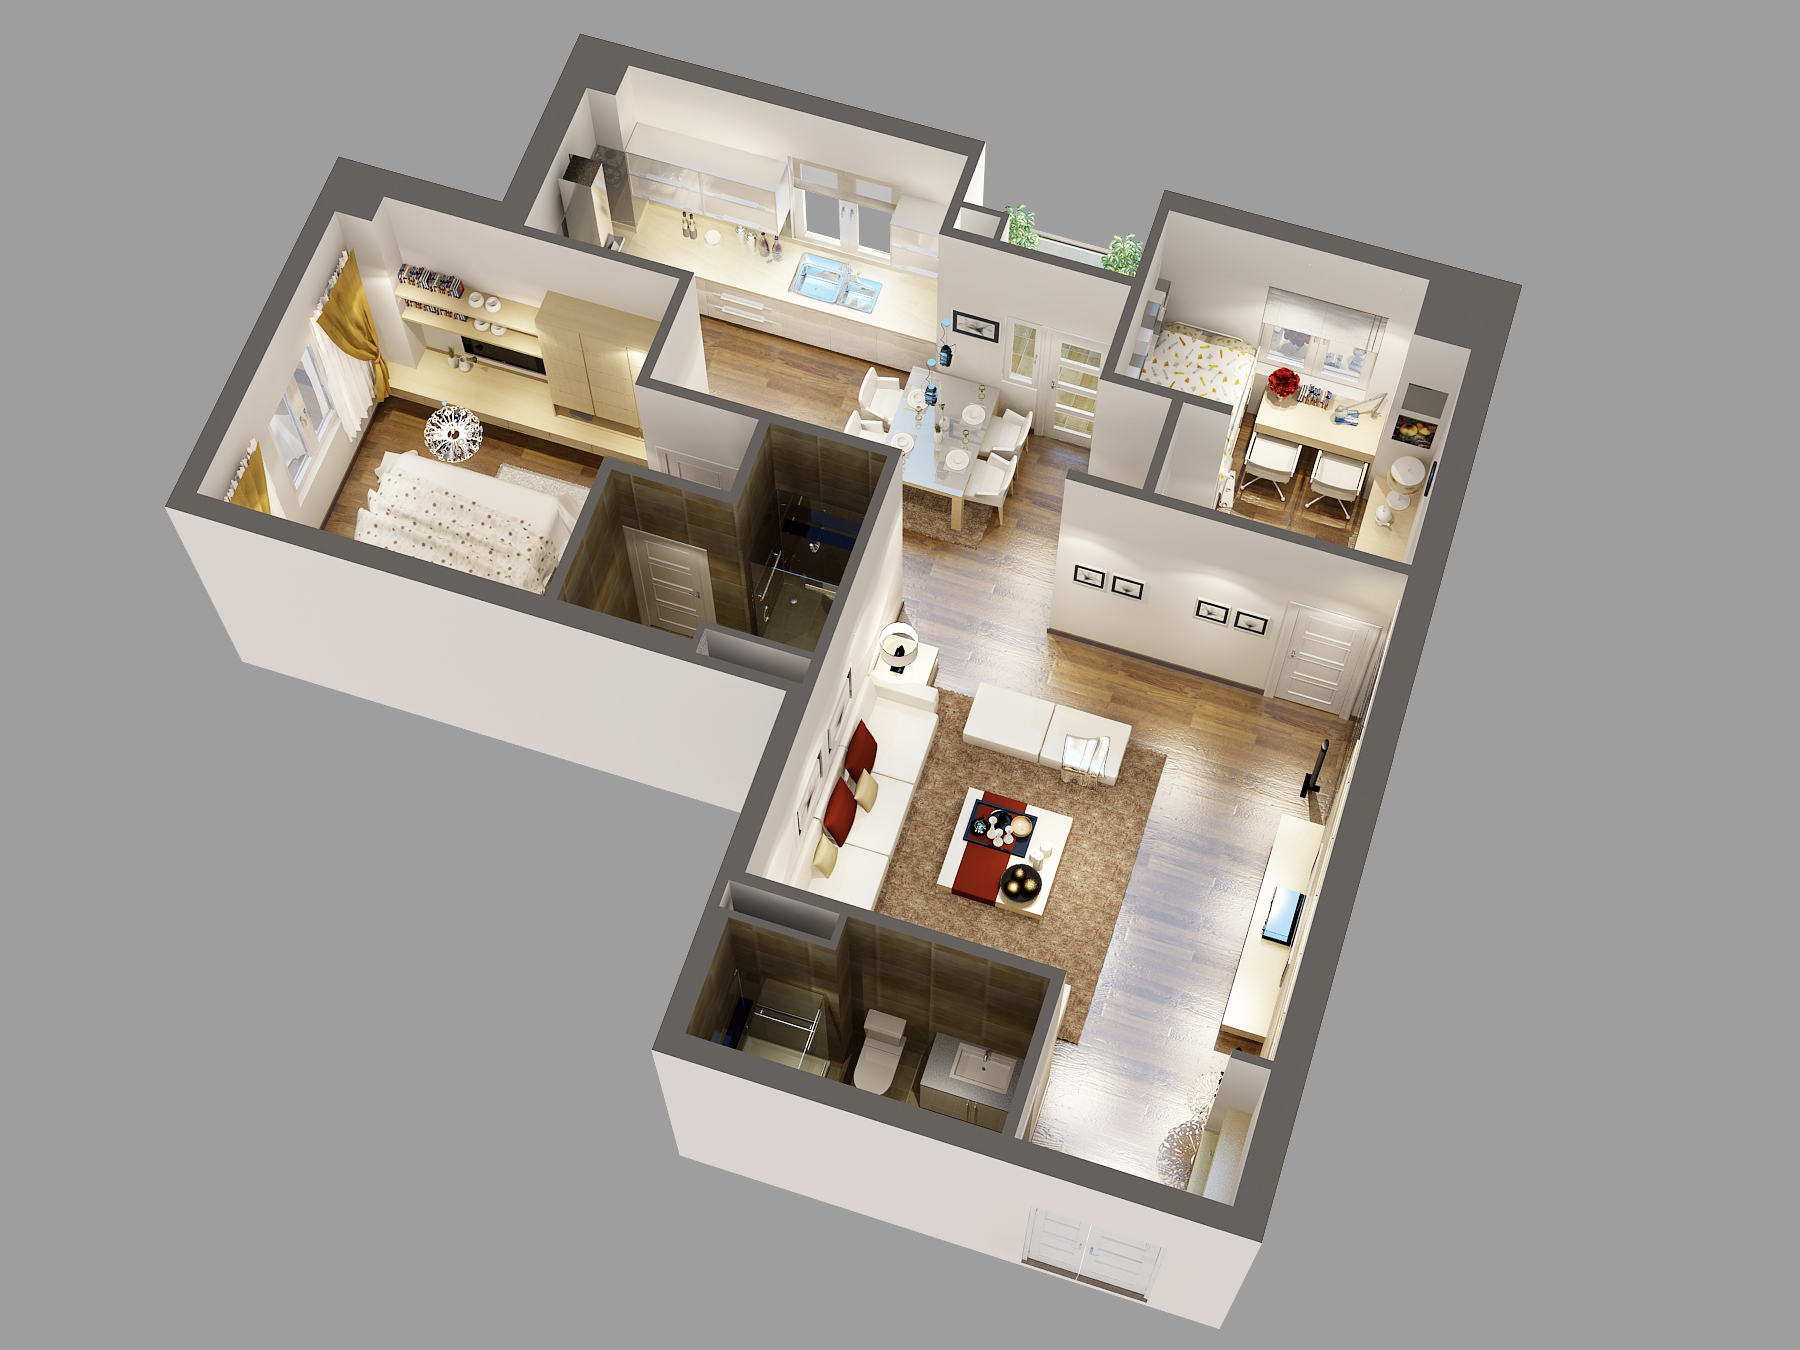 Detailed house cutaway 3d model 3d model max 3d model house design